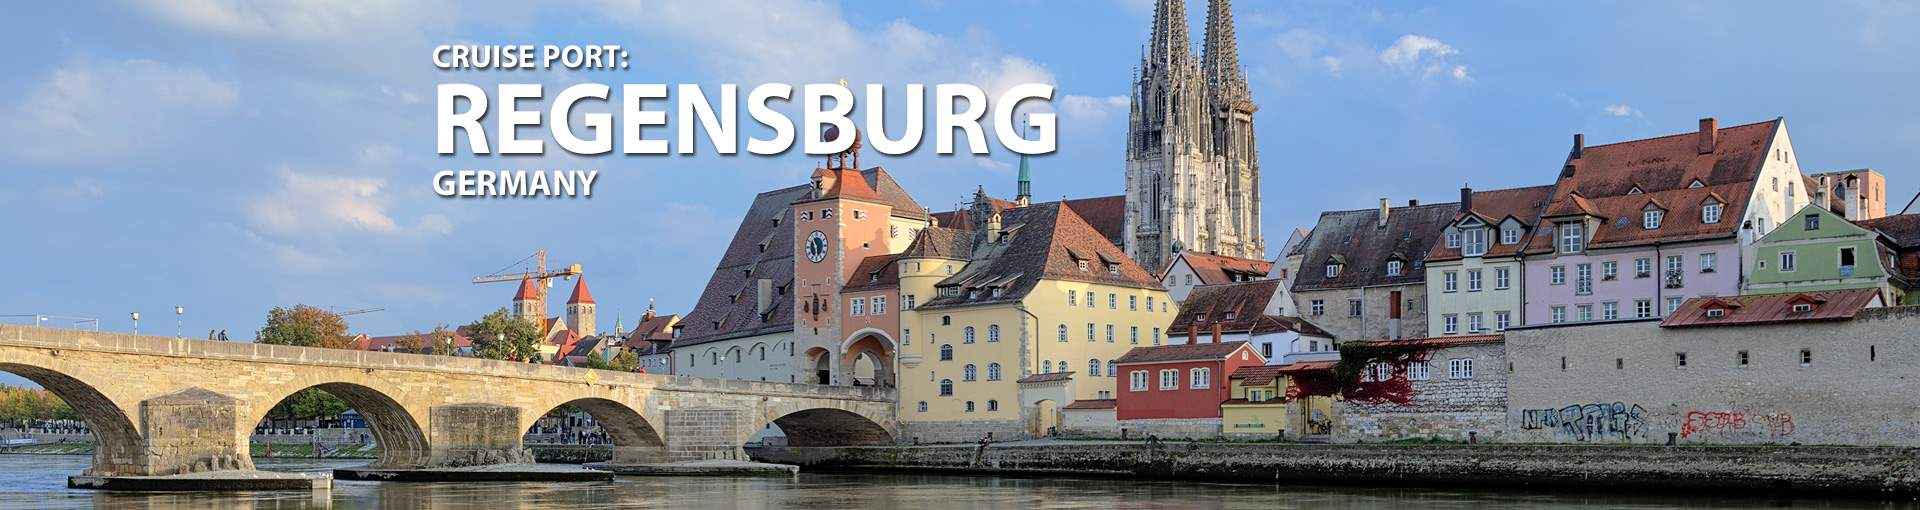 Cruises to Regensburg, Germany